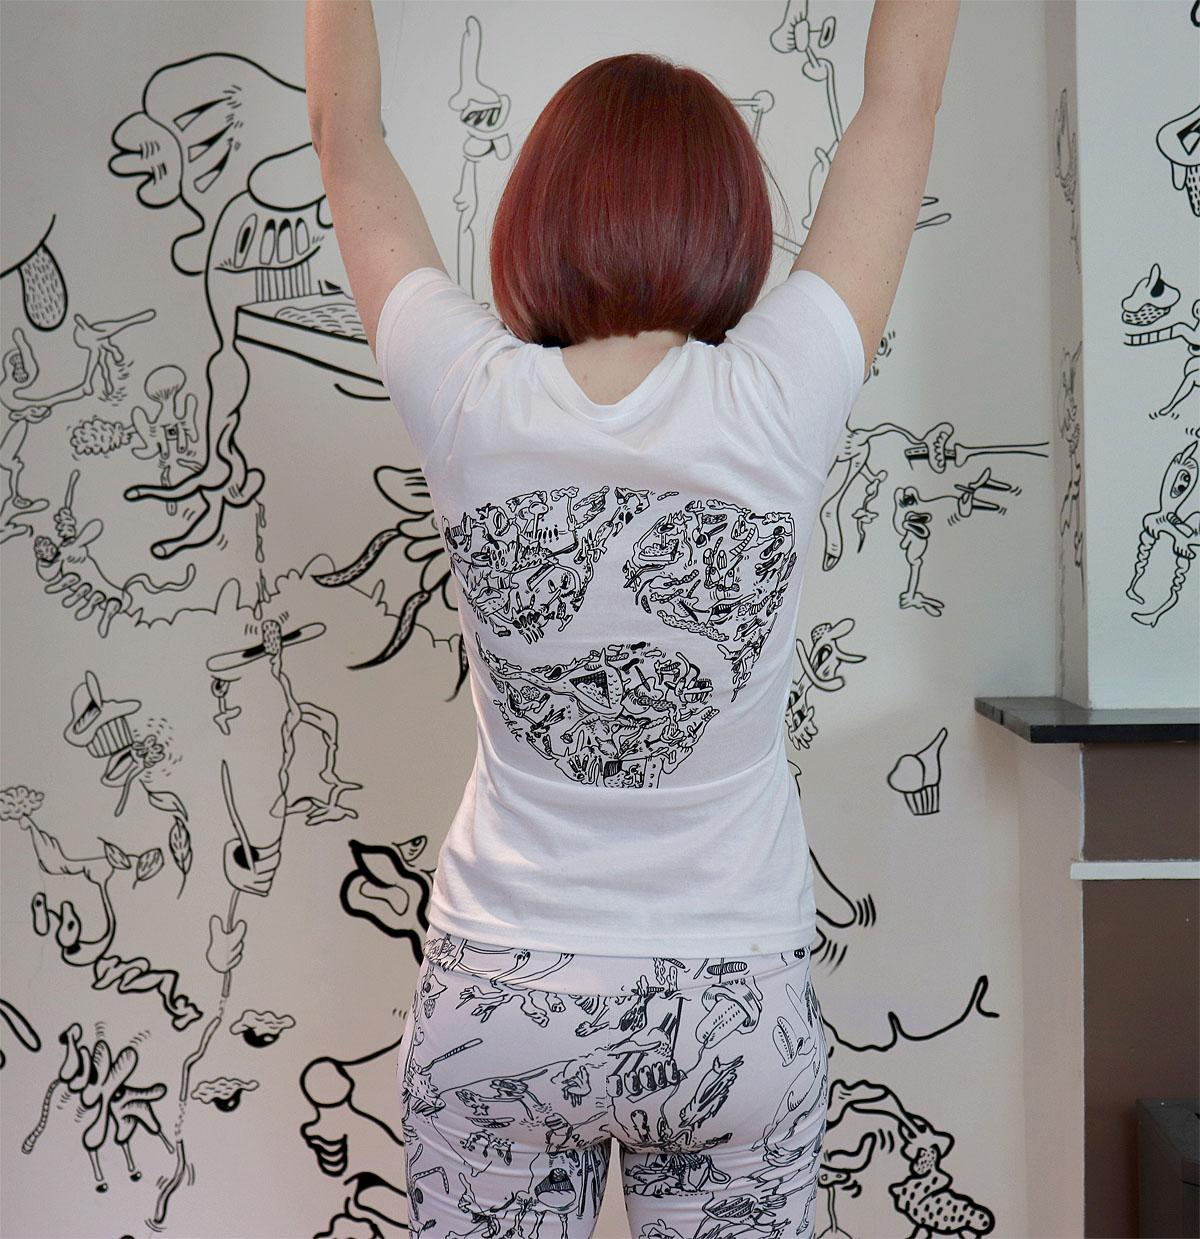 "An artist from Belgium has turned her home into a work of art by creating doodles in every room.""An artist and illustrator and I use a self-invented technique of automatic drawing to delve into my subconscious,"" says Jook, real name Joke Neyrinck. ""I doodle everywhere and at every spare moment; by quickly drawing, barring any conscious thought, I am giving as much room as possible to my imagination. ""Though extensive, at times even compulsive, through doodling a new and totally unique world arises.""Where: Belgium, BelgiumCredit: jookdoodlewoman/Cover Images"